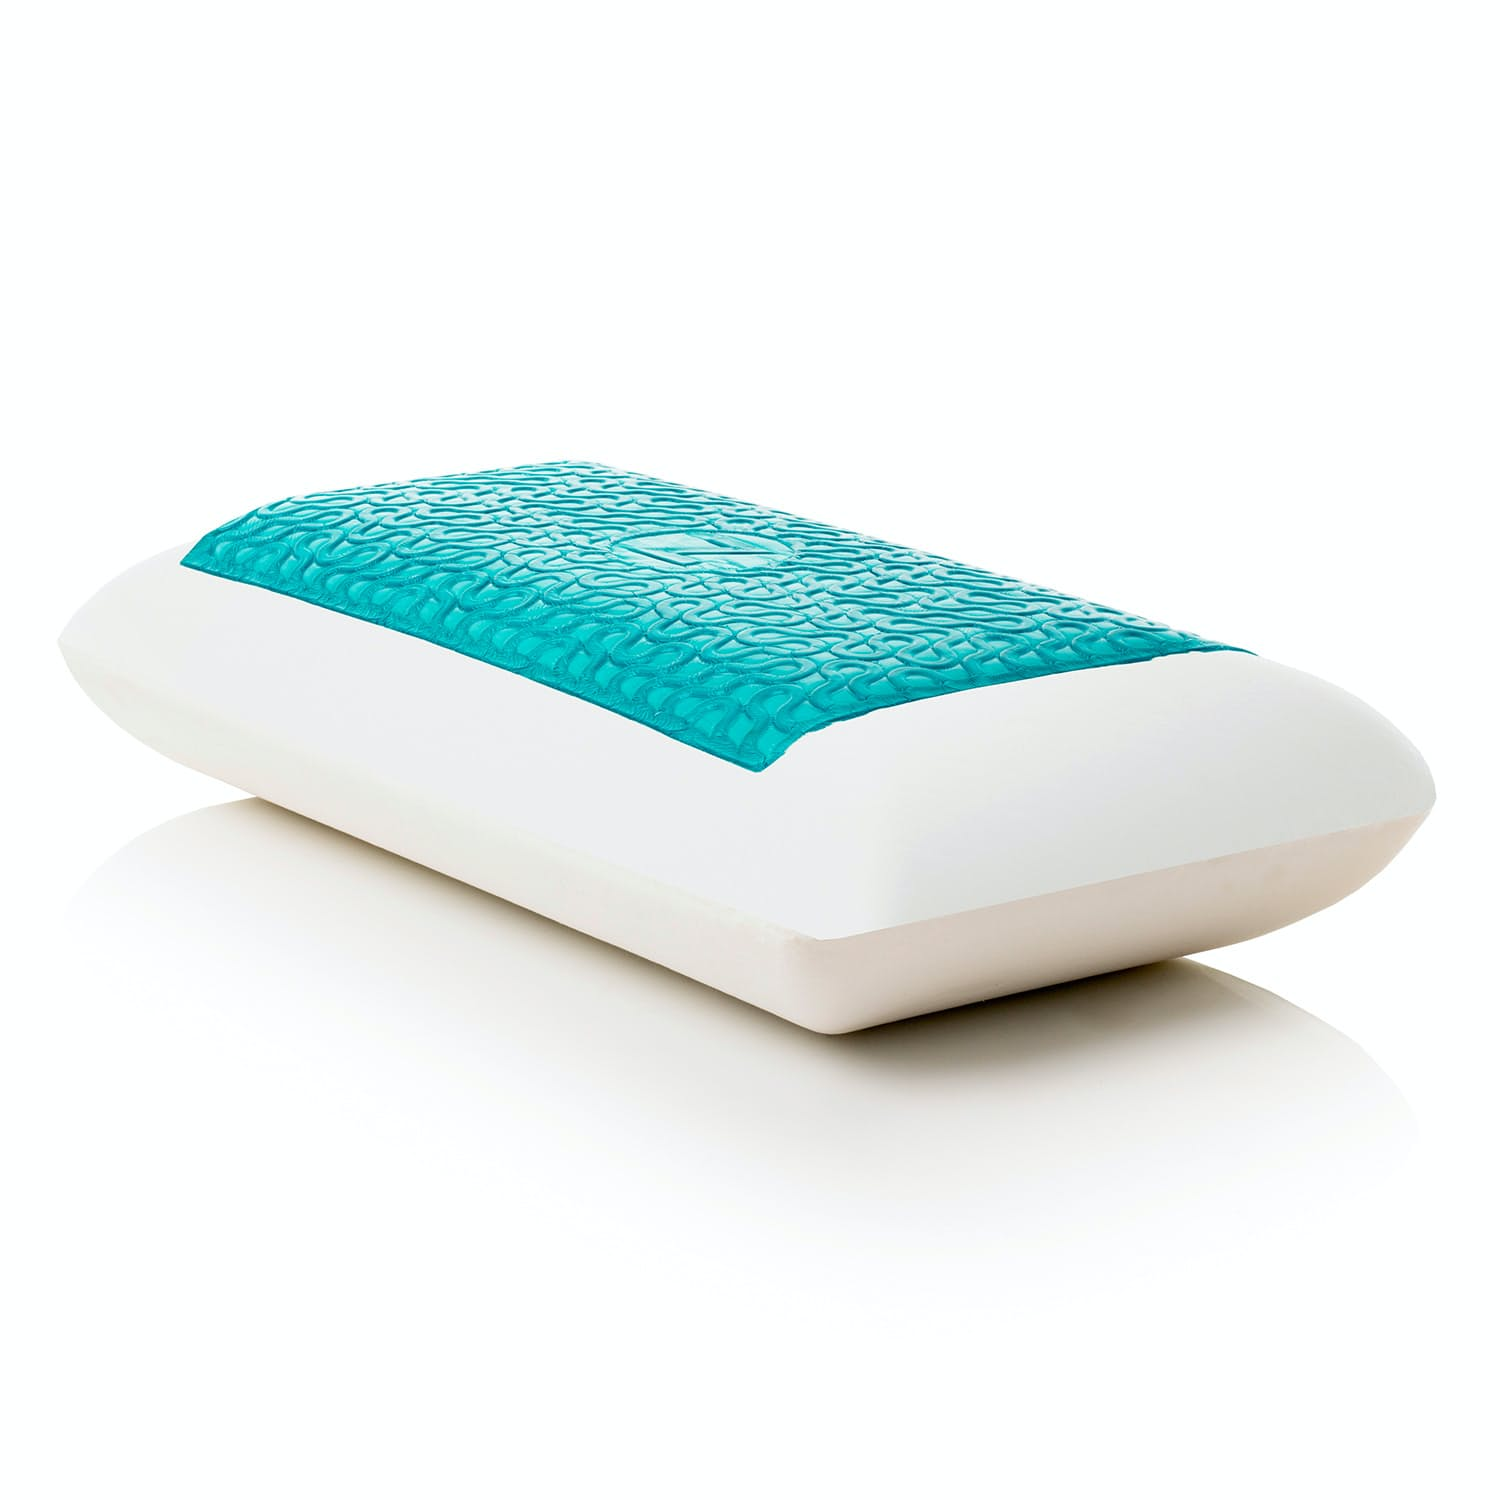 Pxdzrfquxk malouf z dough cooling pillow queen 0 original